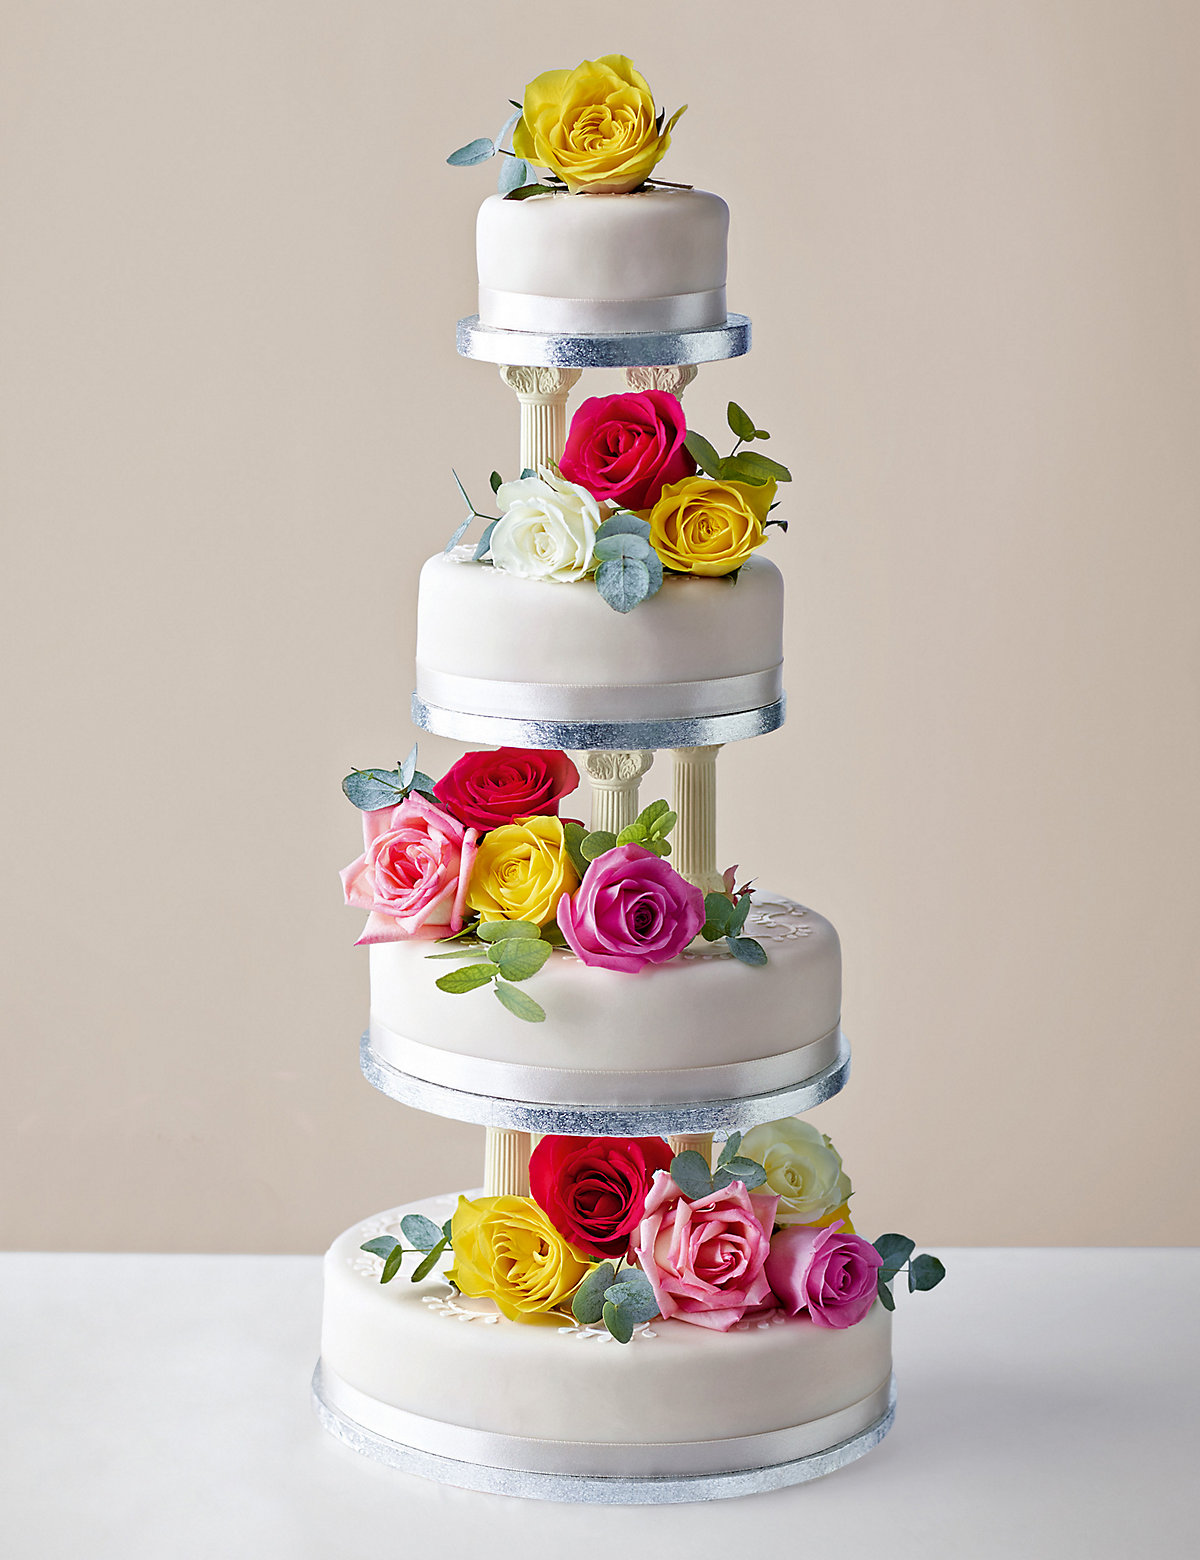 wedding cakes wedding cakes pictures Traditional Wedding Cake Create Your Own Fruit Sponge or Chocolate